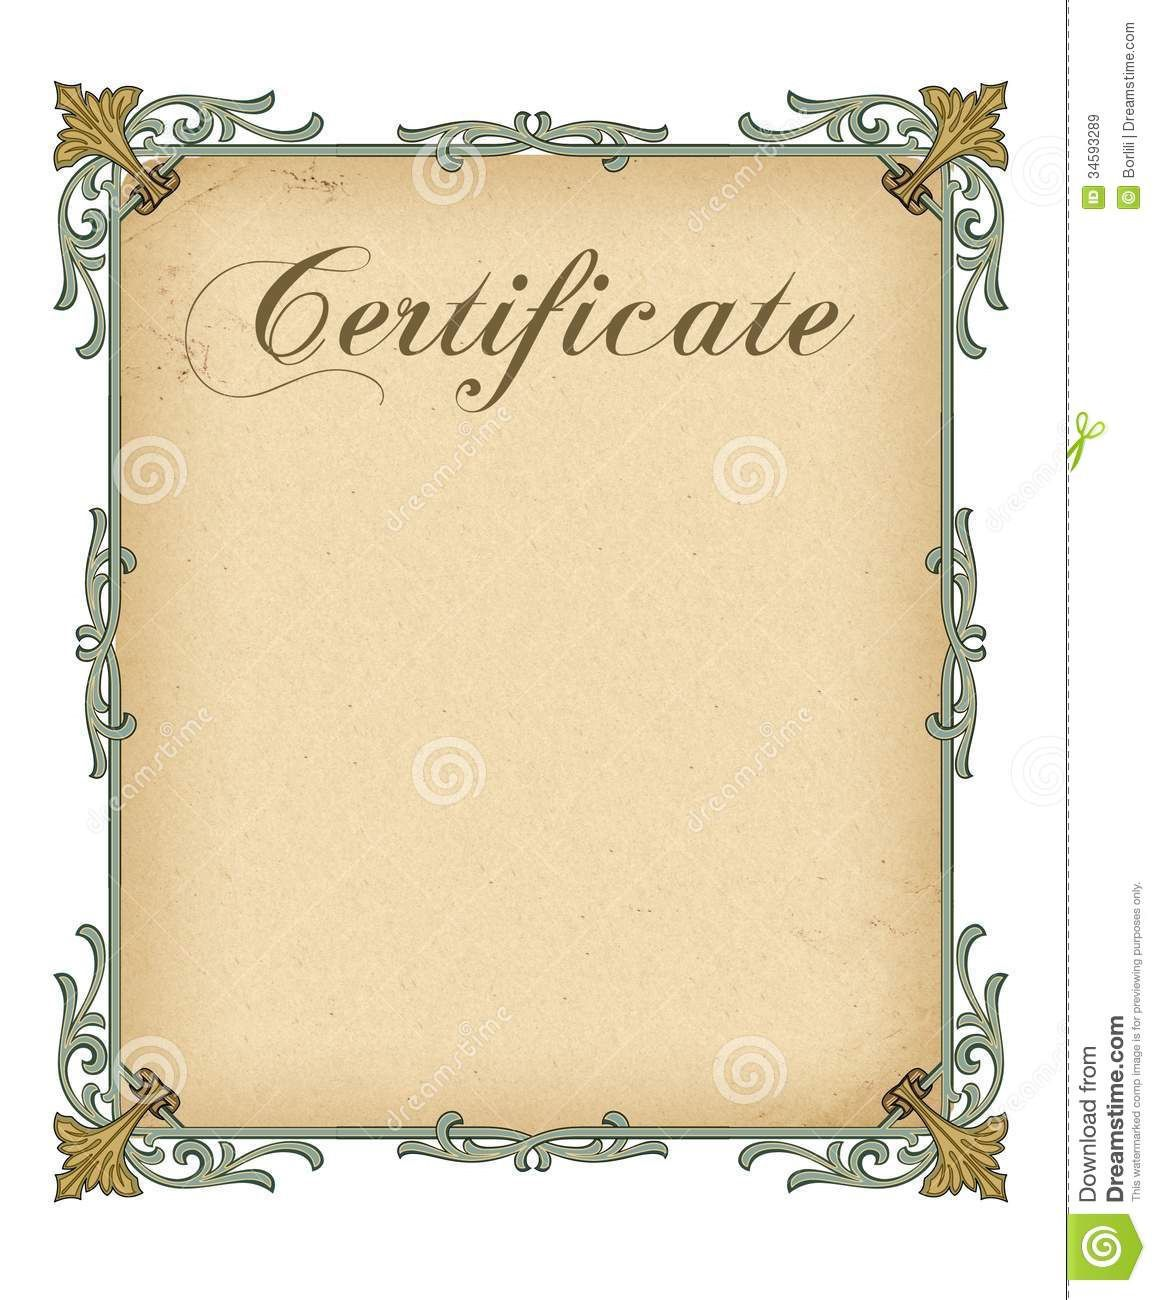 006 Remarkable Free Blank Certificate Template Example  Templates Downloadable Printable And Award Gift For WordFull